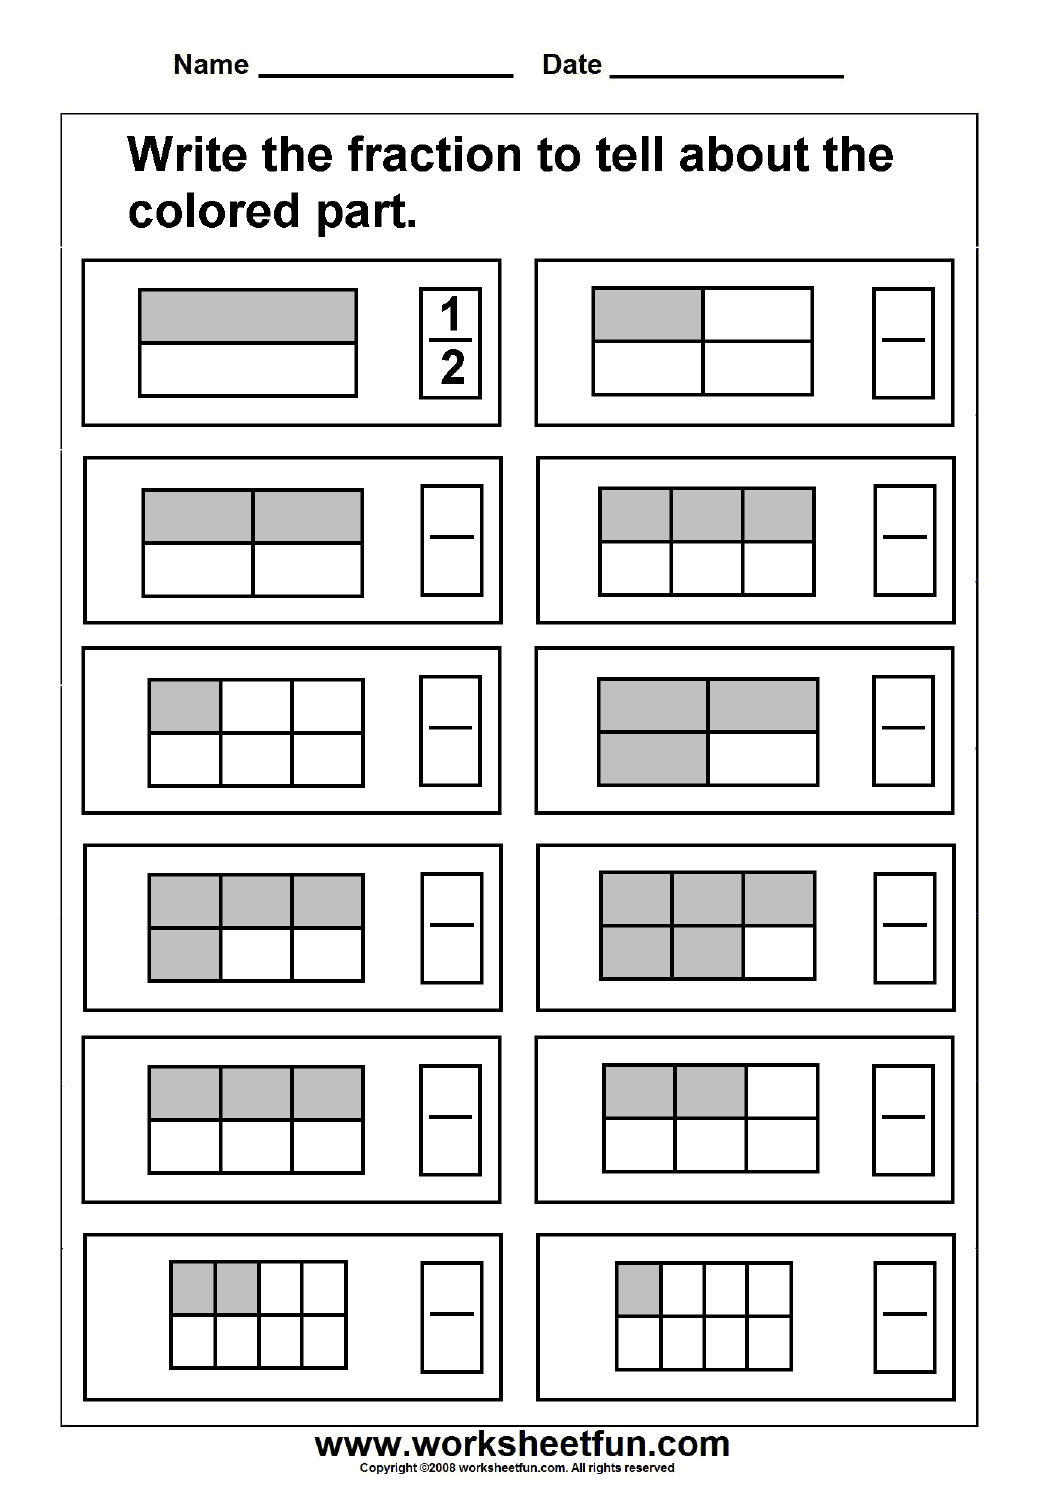 Fraction FREE Printable Worksheets Worksheetfun – Free Printable Equivalent Fractions Worksheets